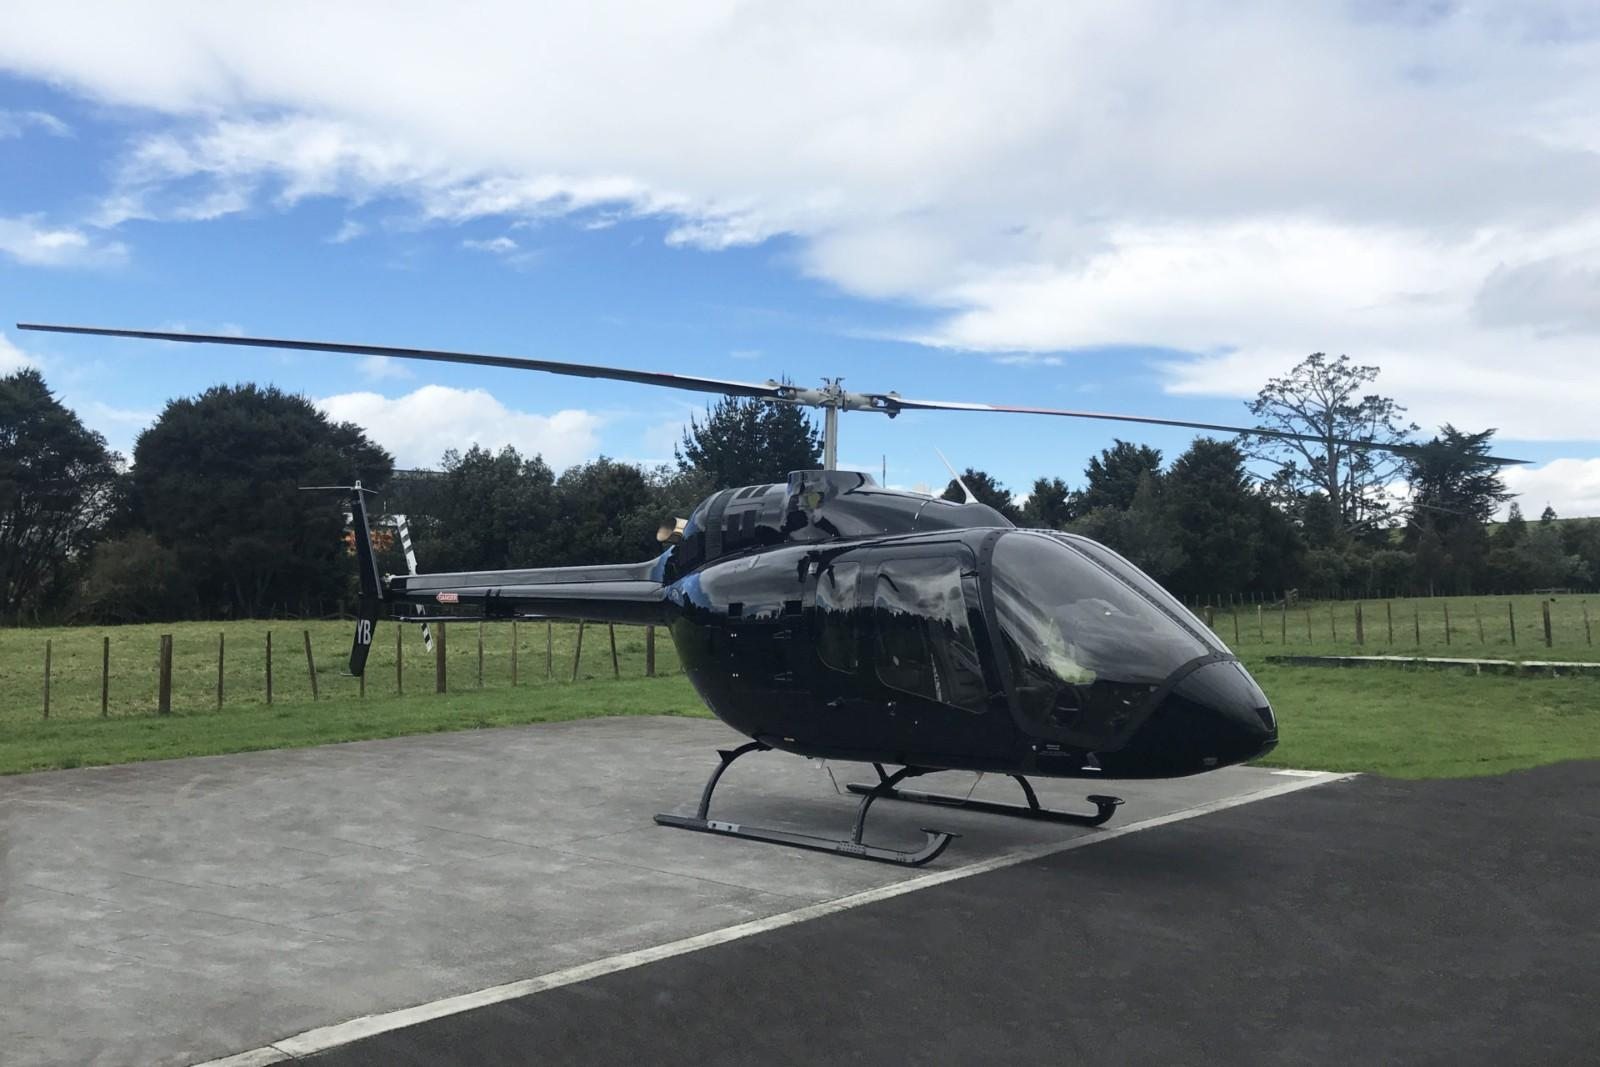 Helicopter at the Helipad